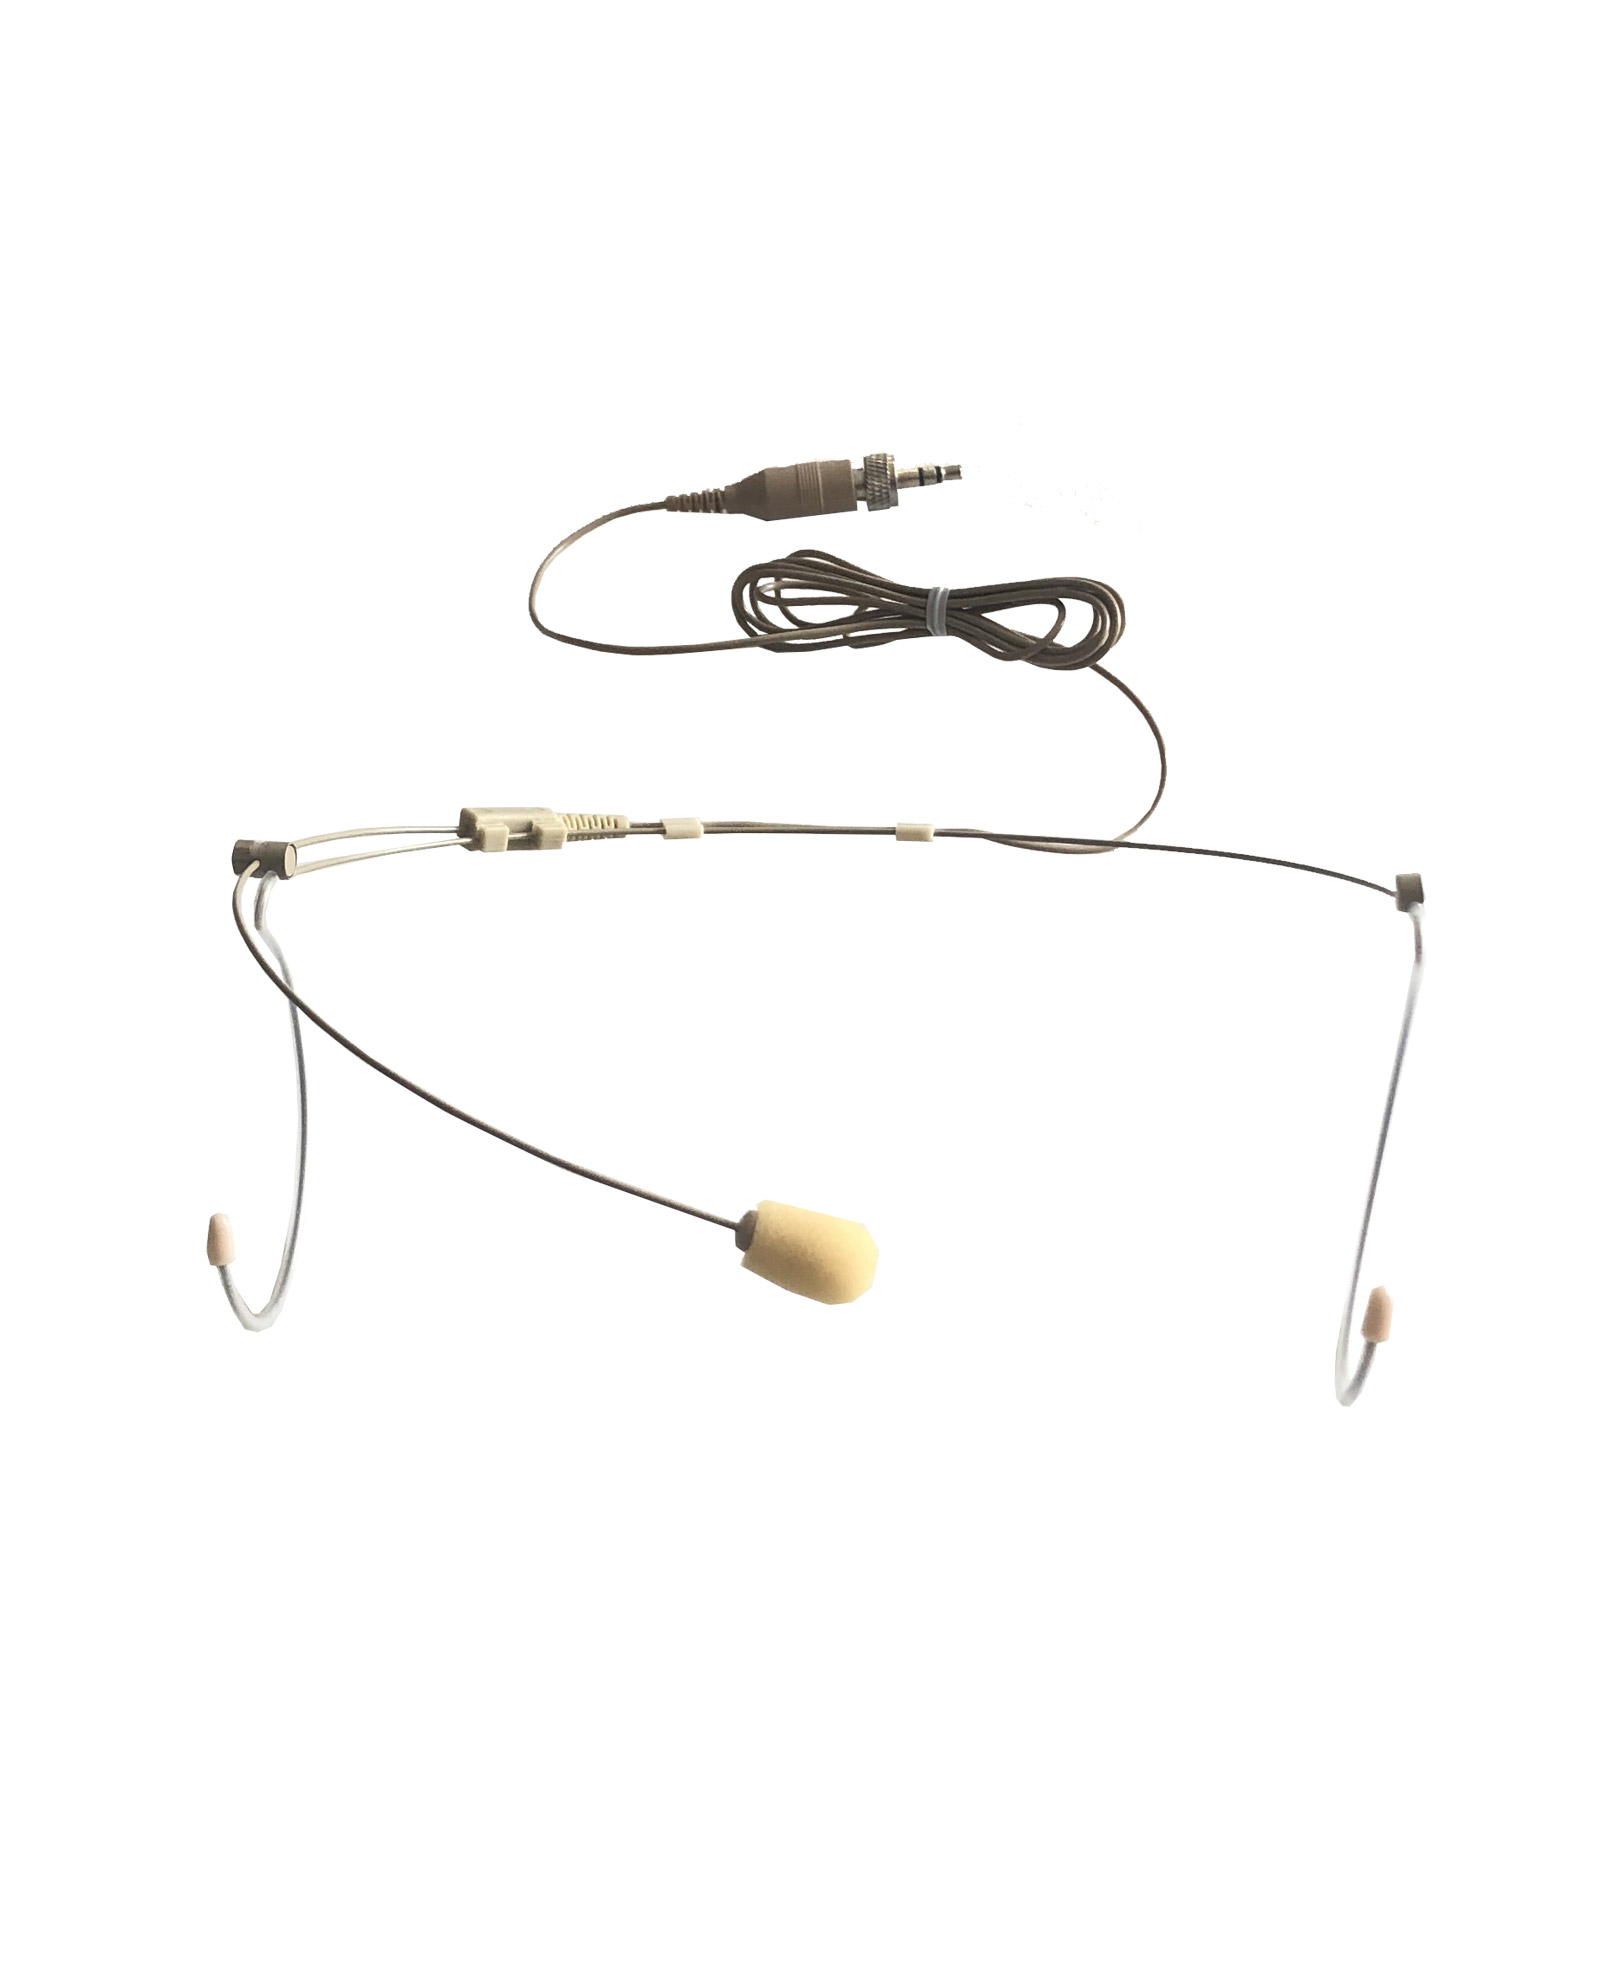 Generic Madonna Headset Mic For Sennheiser Packs